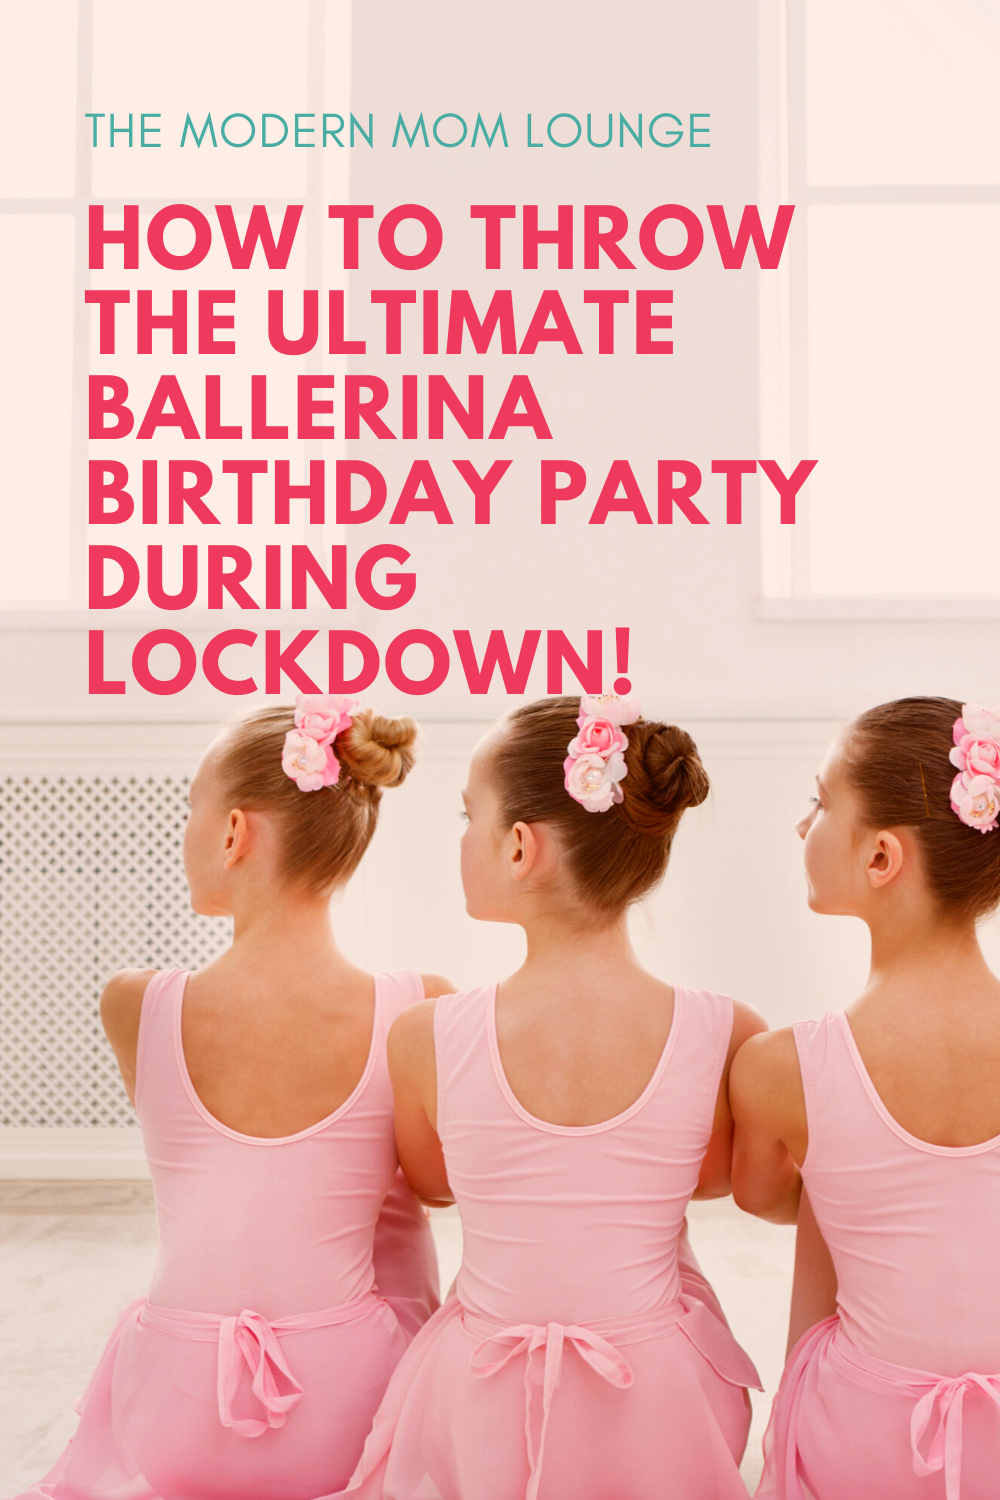 How To Throw The Ultimate Ballerina Birthday Party During Lockdown!